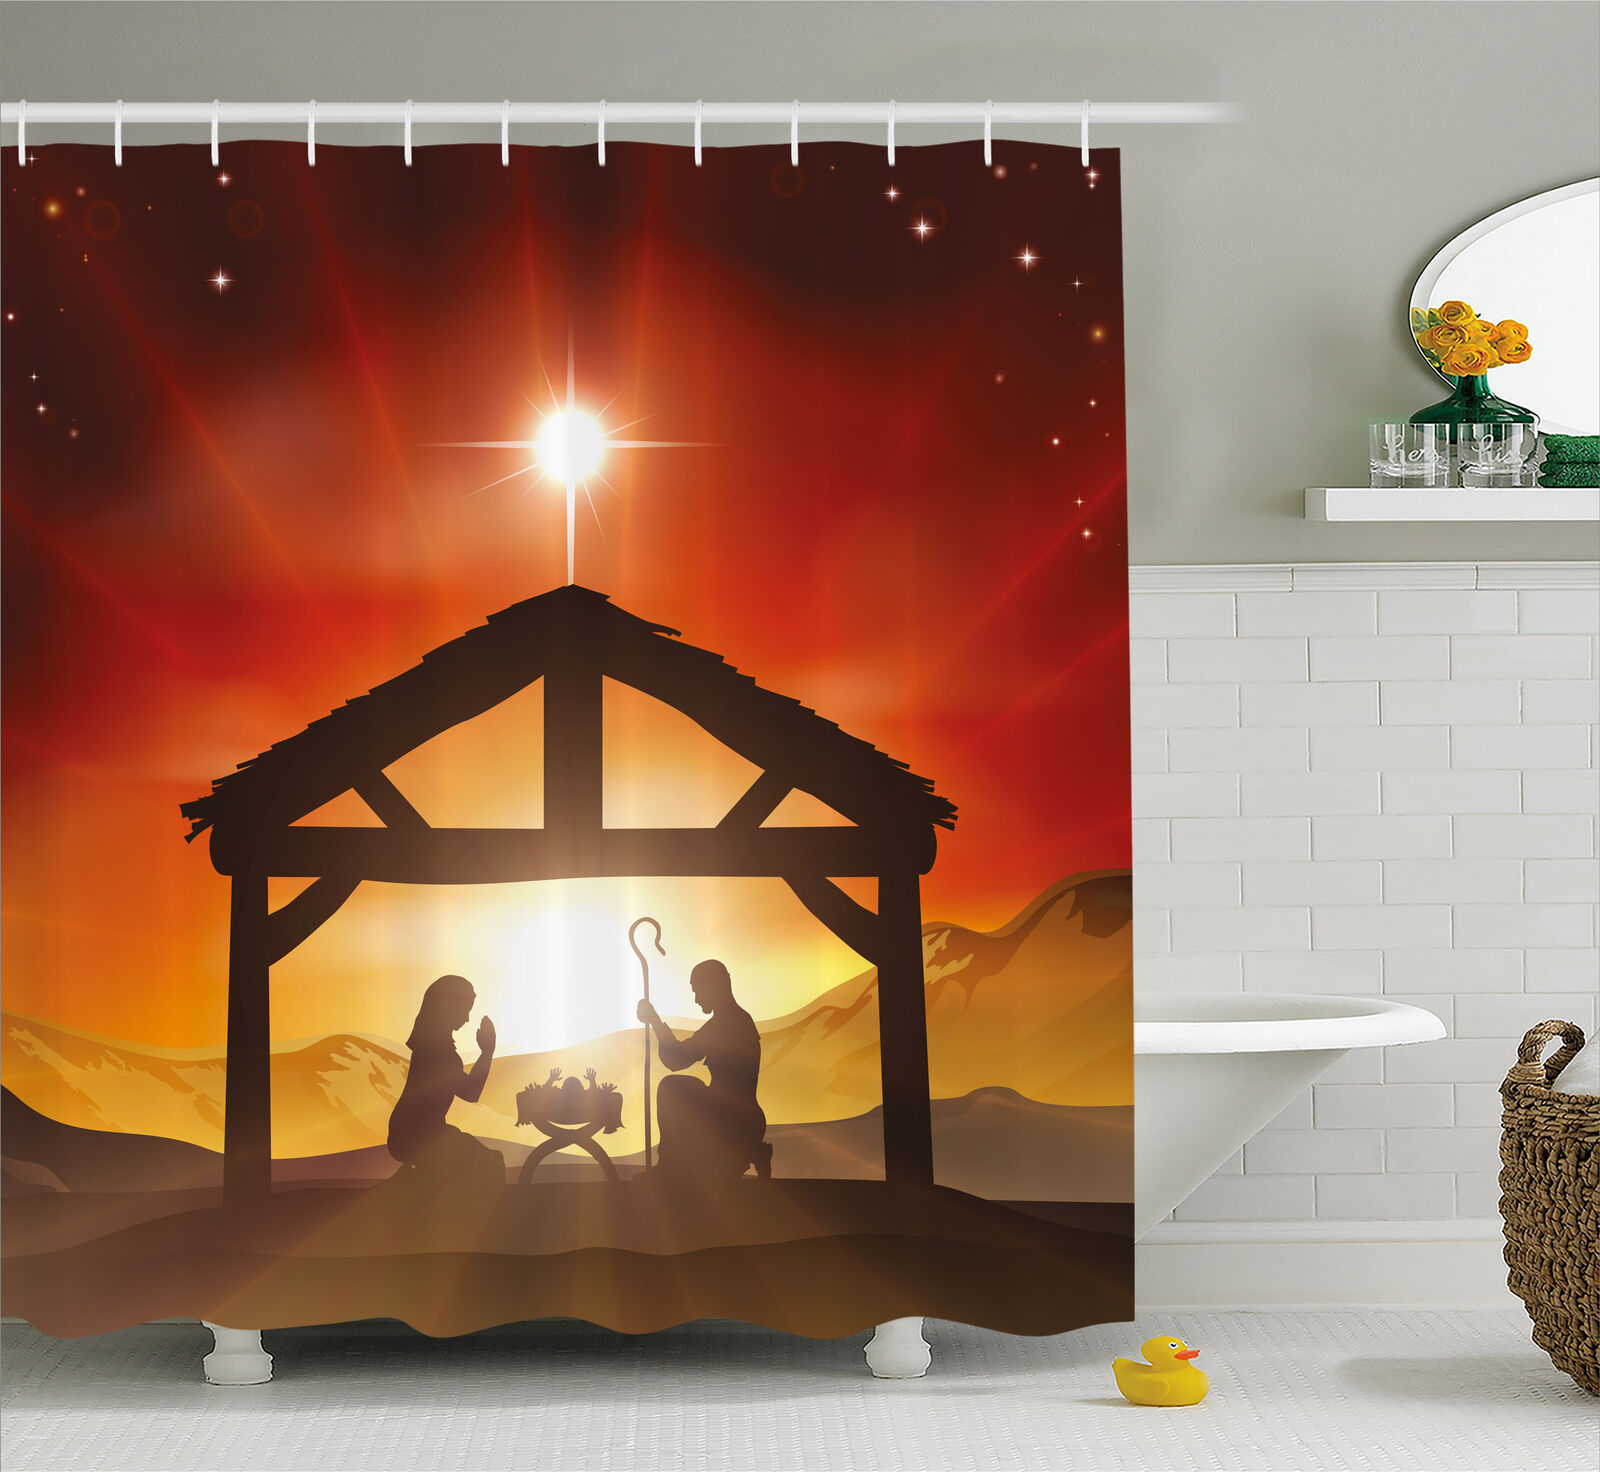 Religious Shower Curtain Baby Messiah Nativity Print For Bathroom 84 Extralong 0d616a